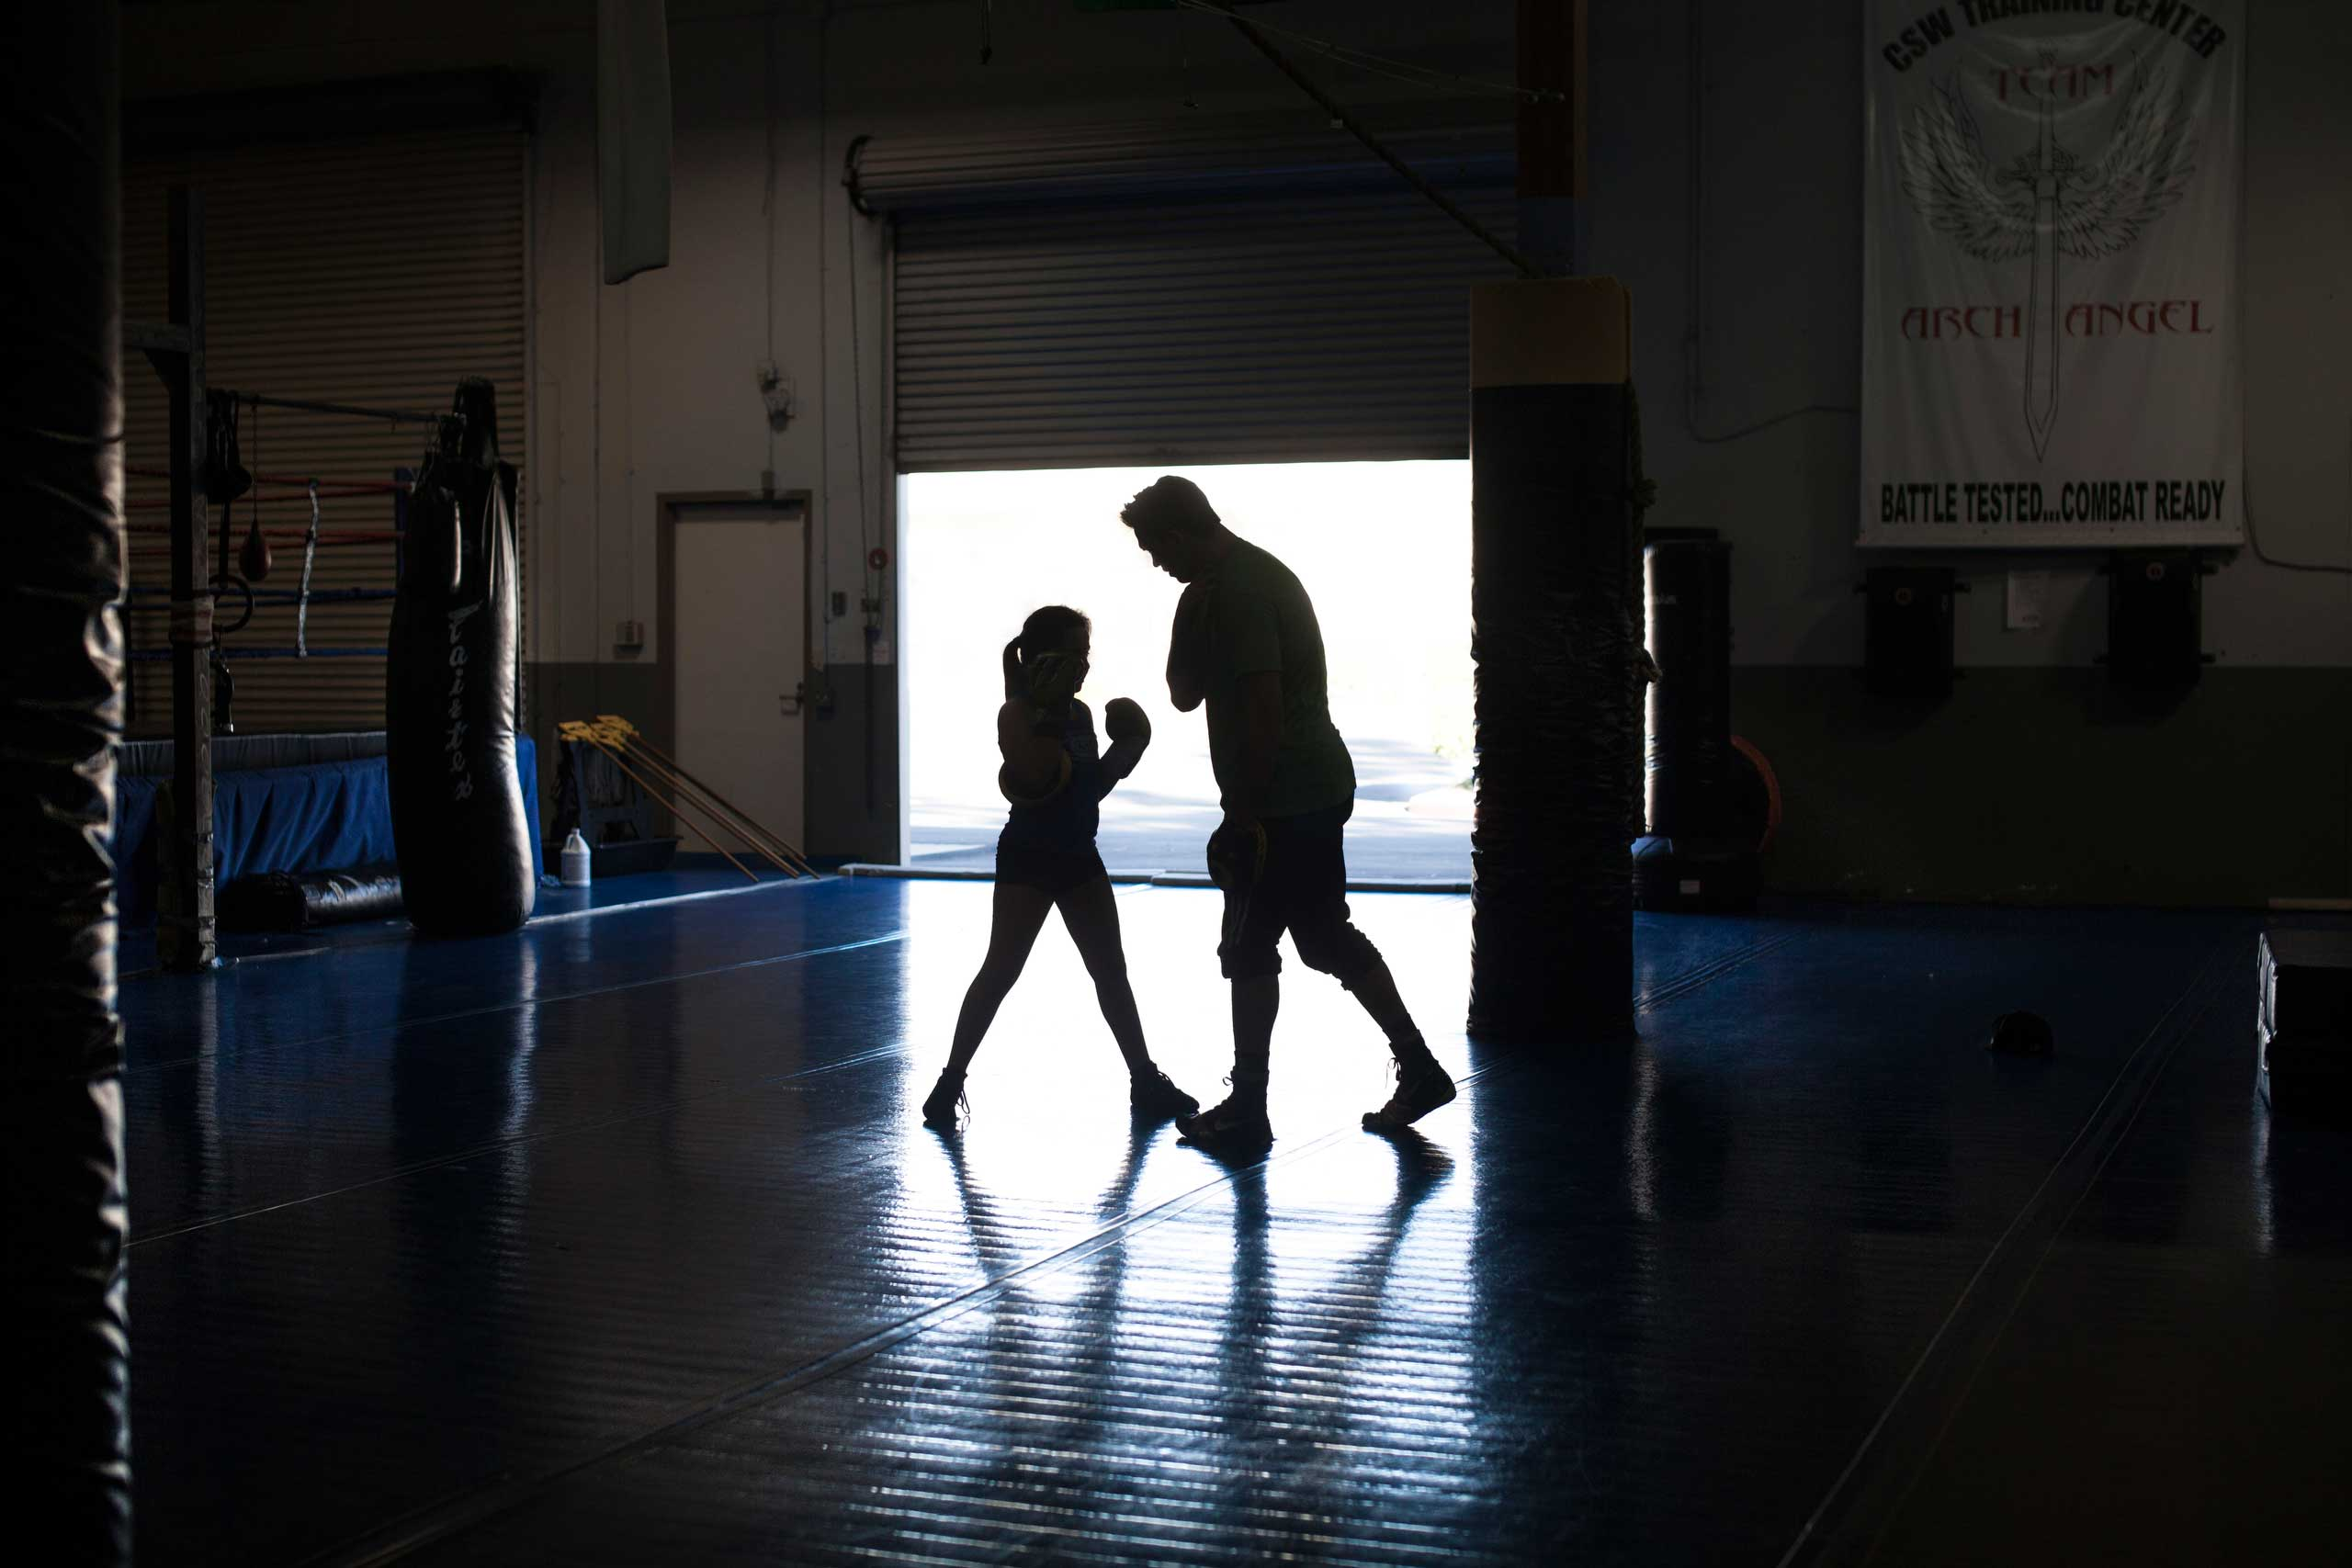 Cheyenne Bowman, 11, during personal mixed martial arts practice with coach Craig Wilkerson, a professional MMA fighter. La Habra, Calif., Nov. 2013.